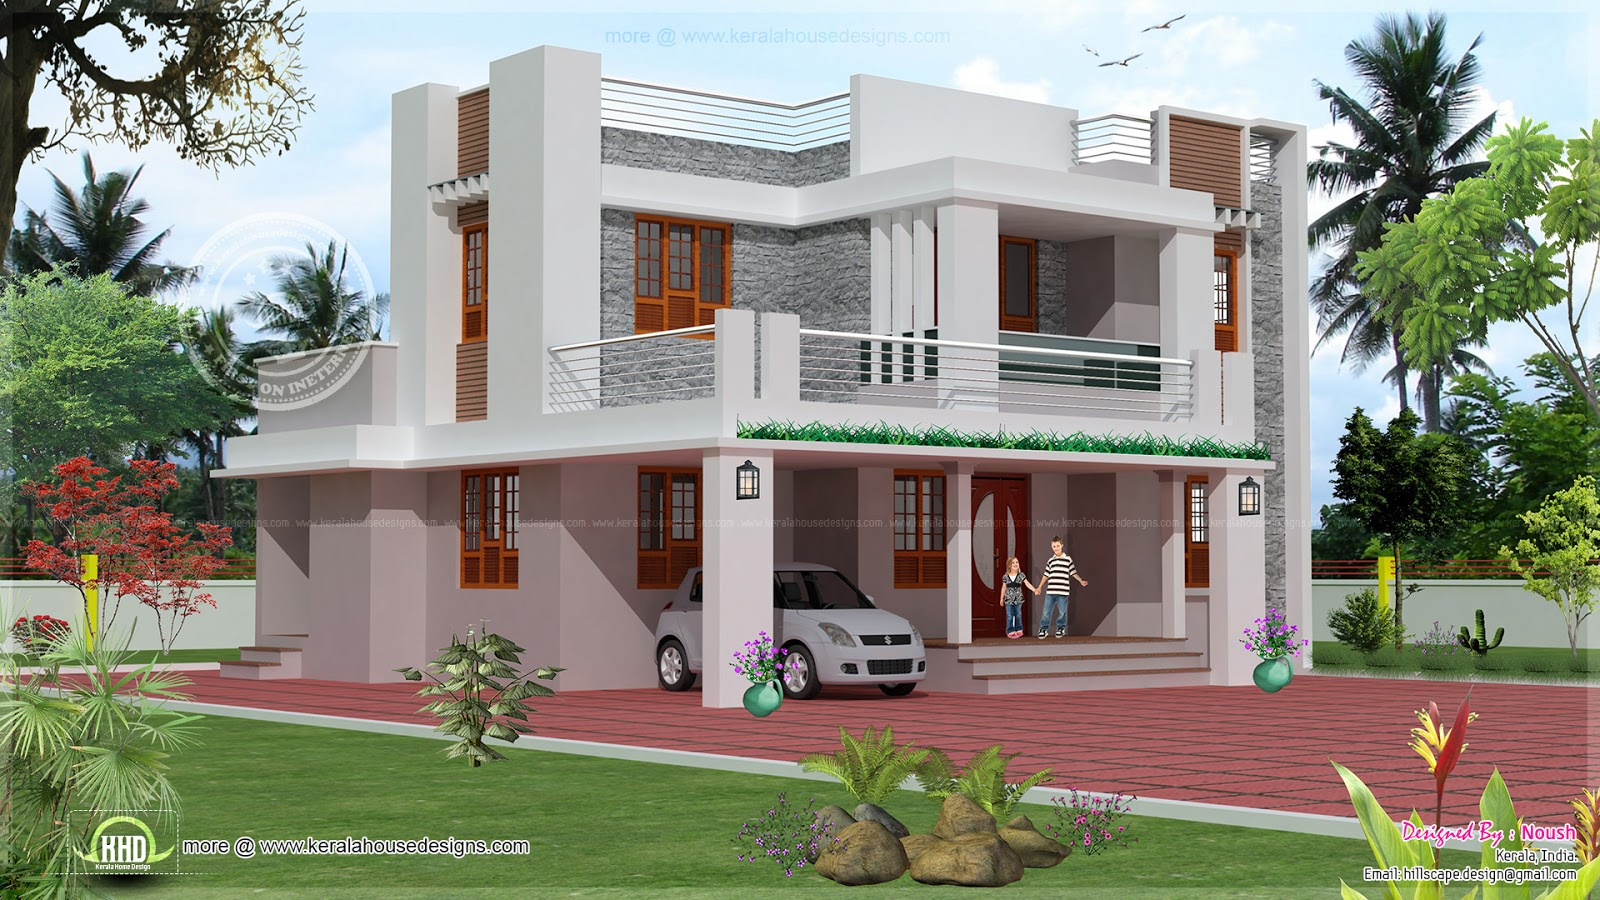 4 bedroom 2 story house exterior design house design plans for 2 story house design